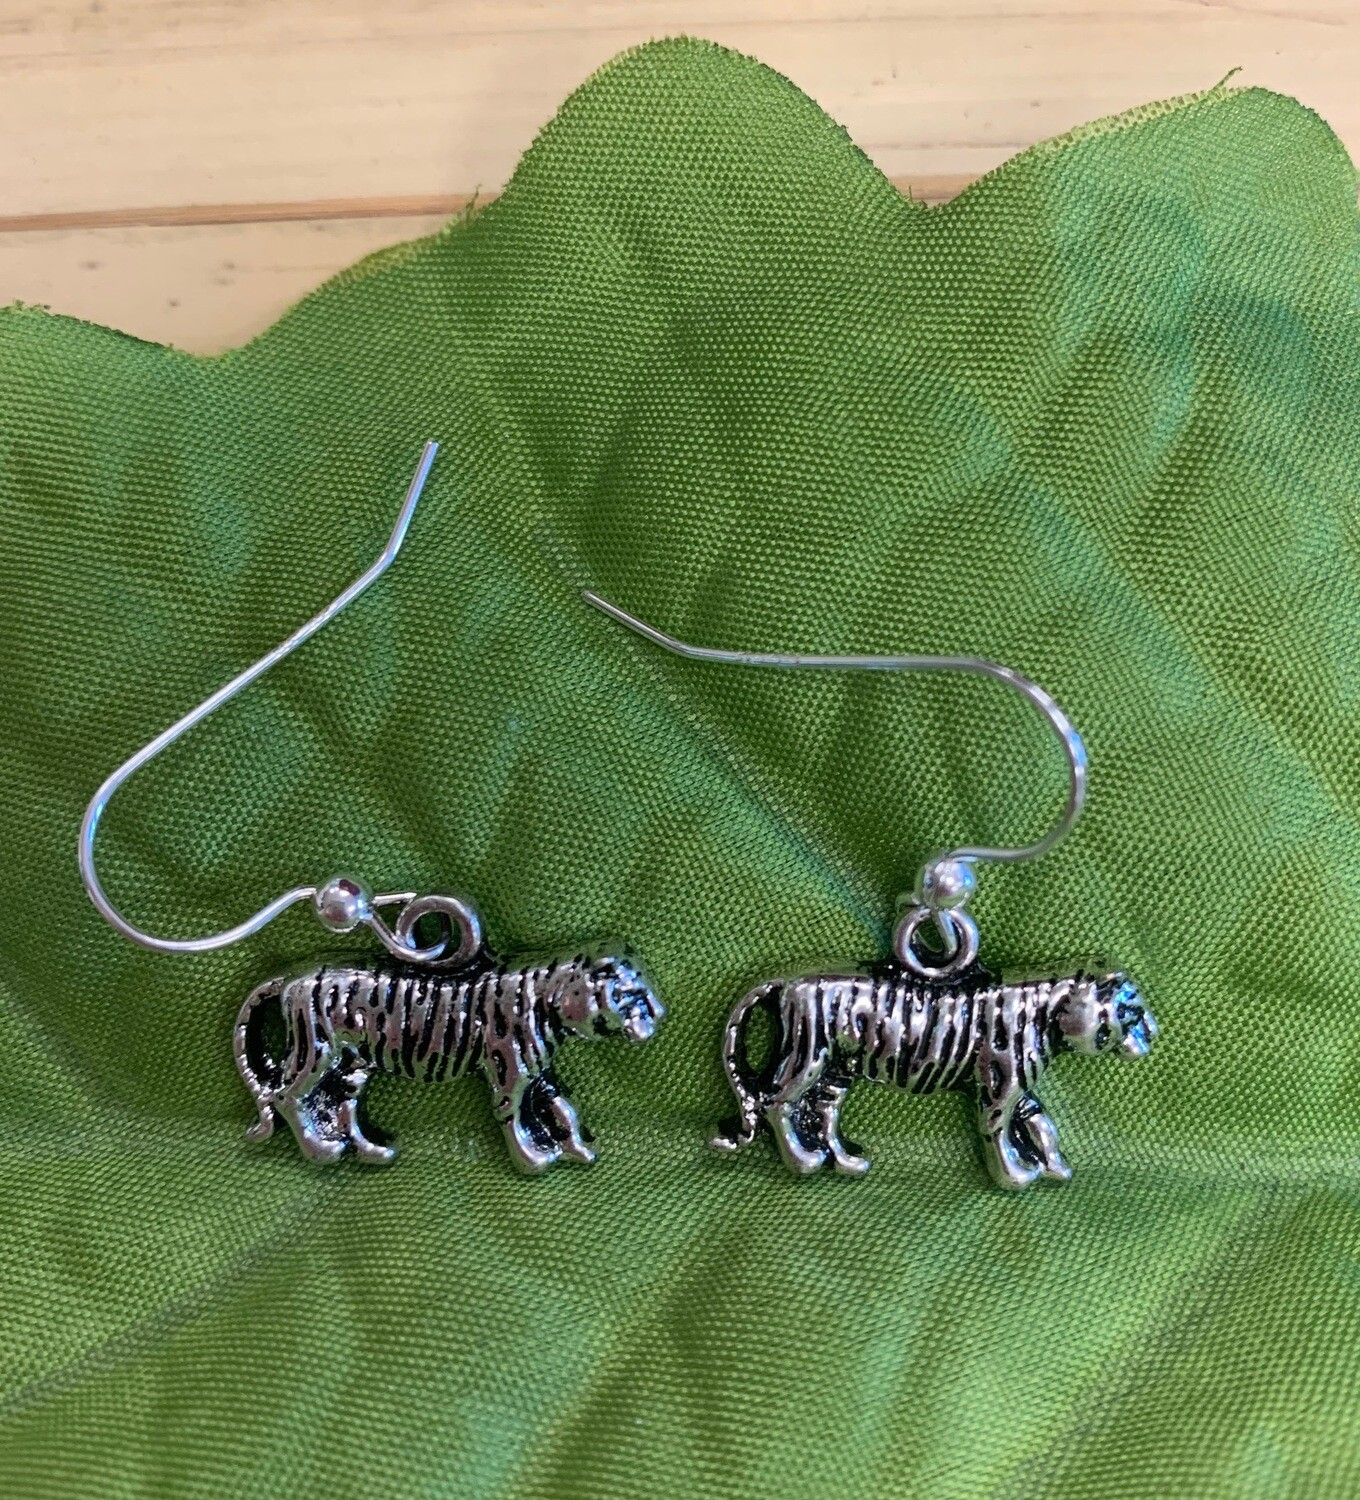 Full Body Tiger Earrings